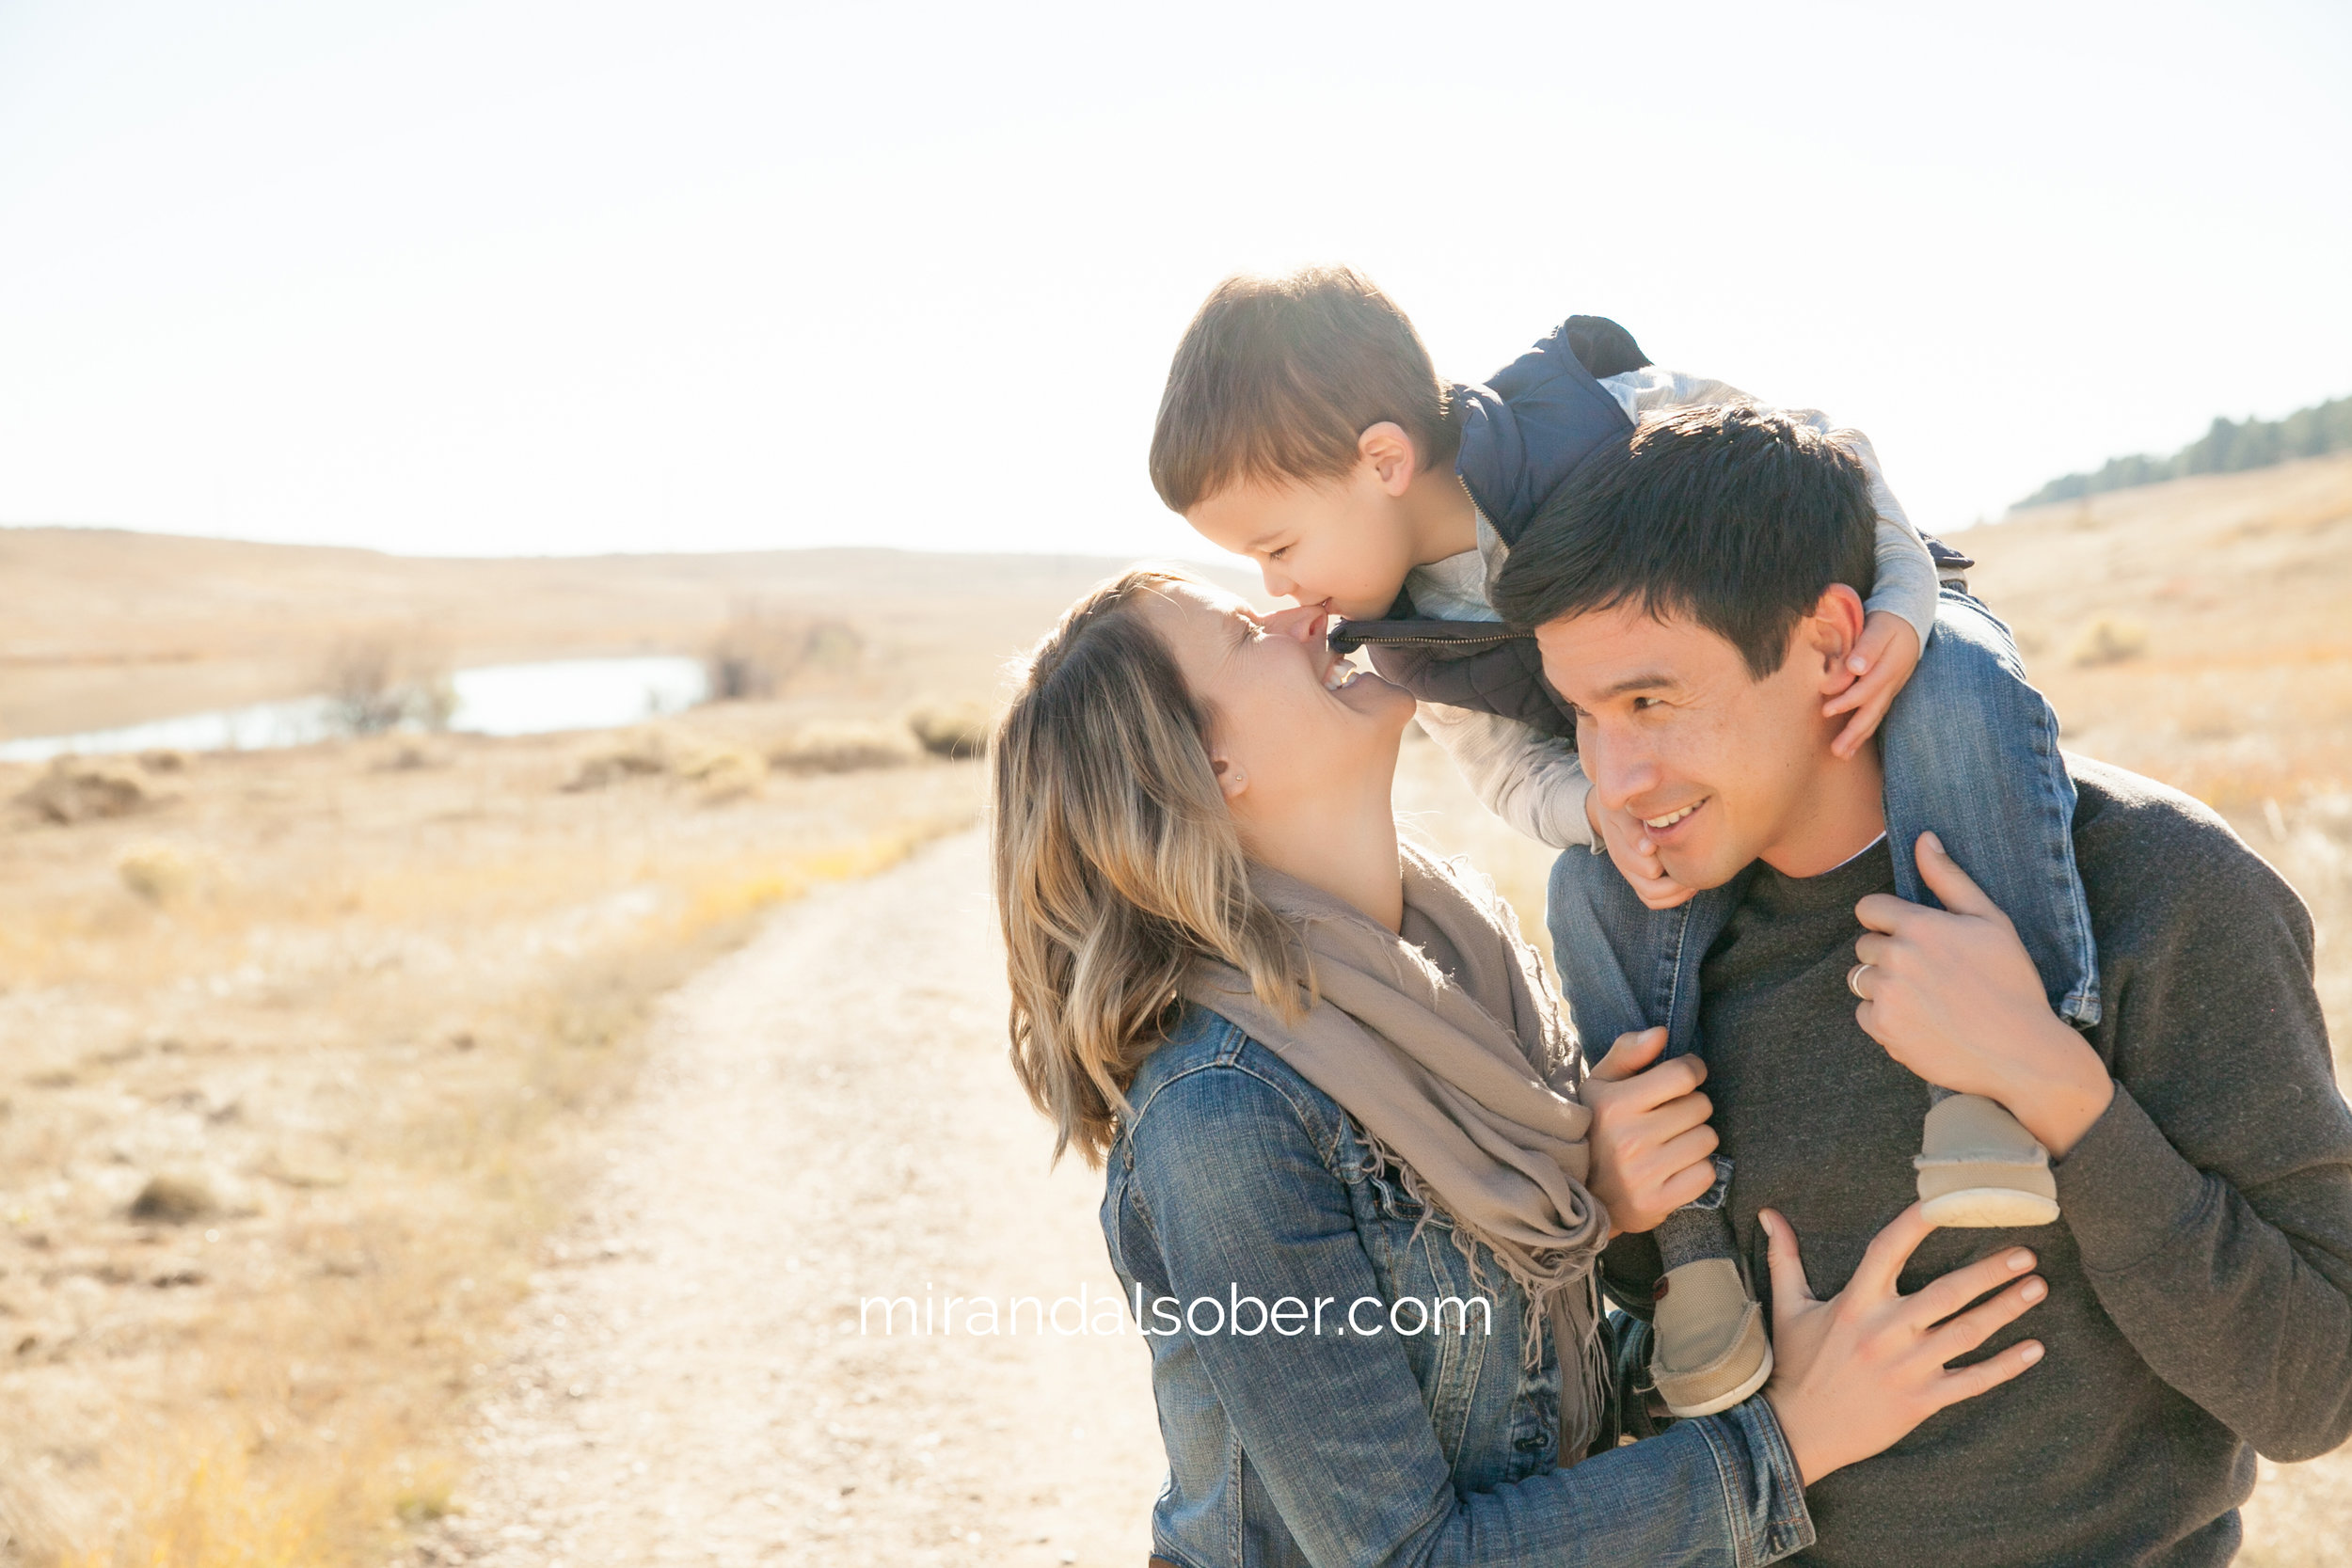 fort collins lifestyle family photography , Miranda L. Sober Photography